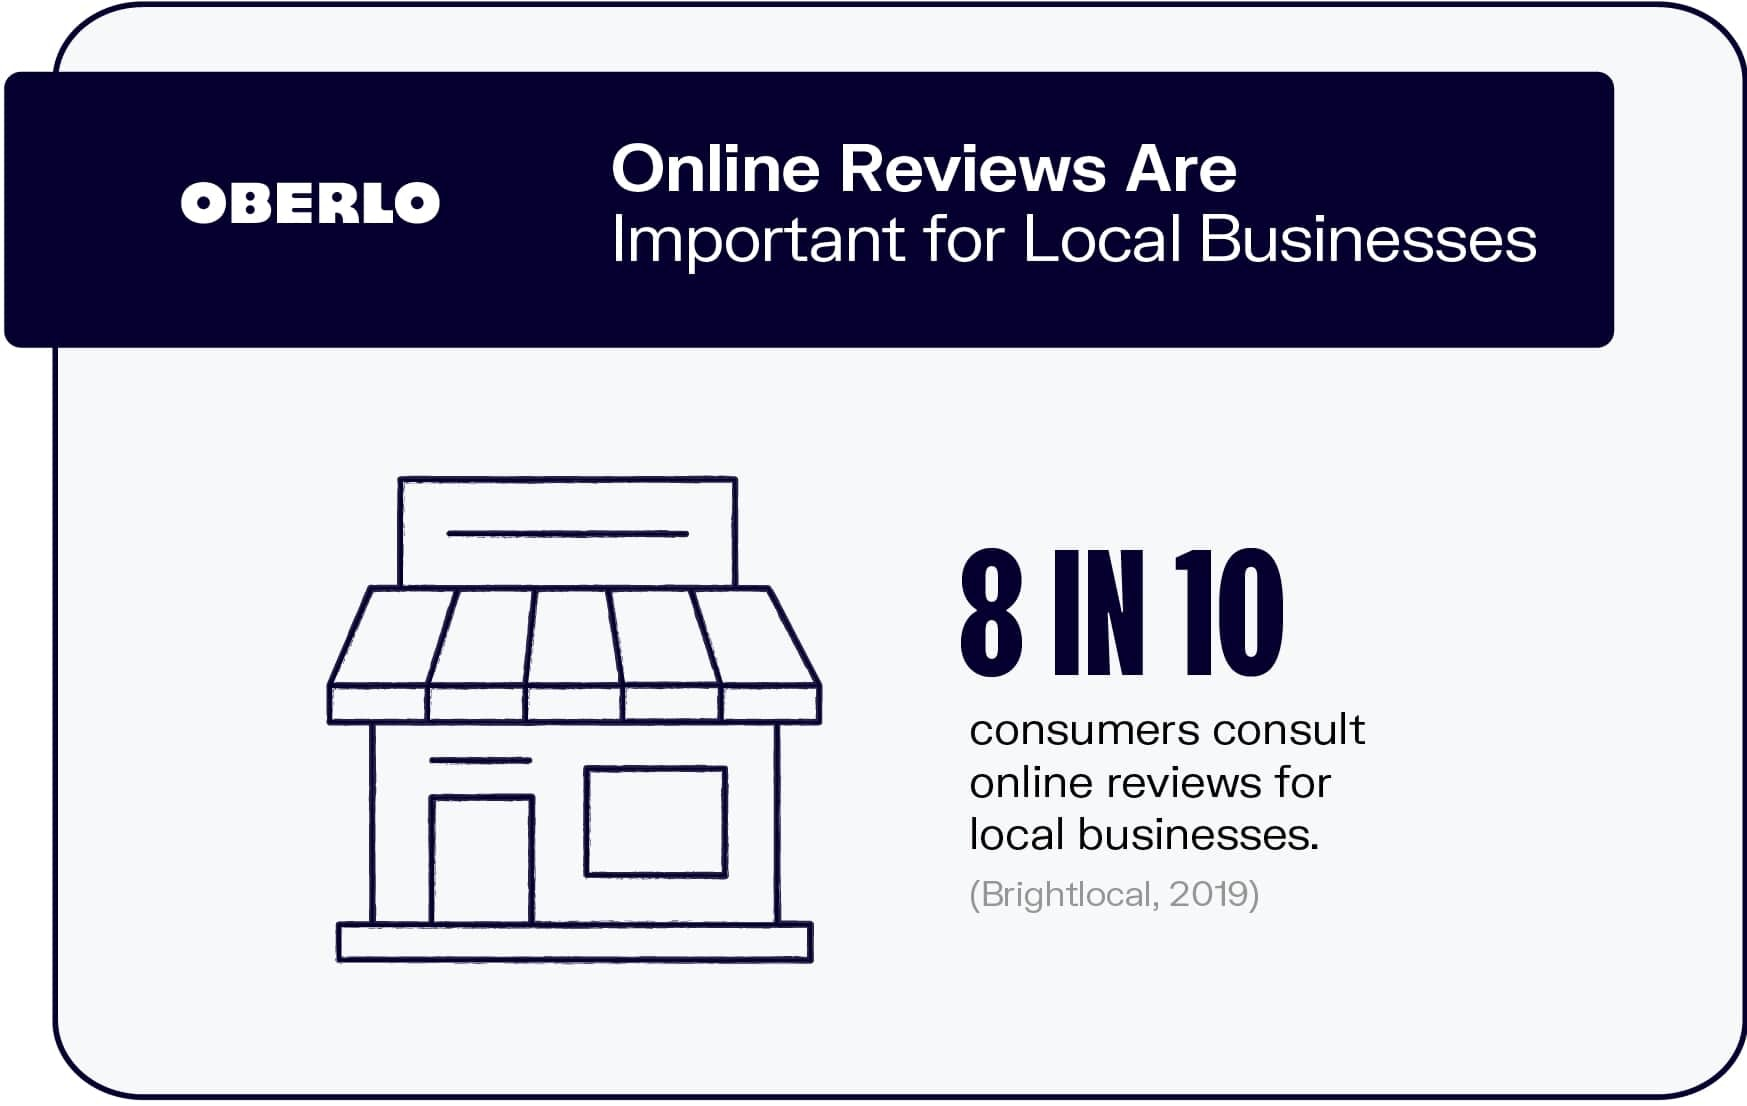 Online Reviews Are Important for Local Businesses